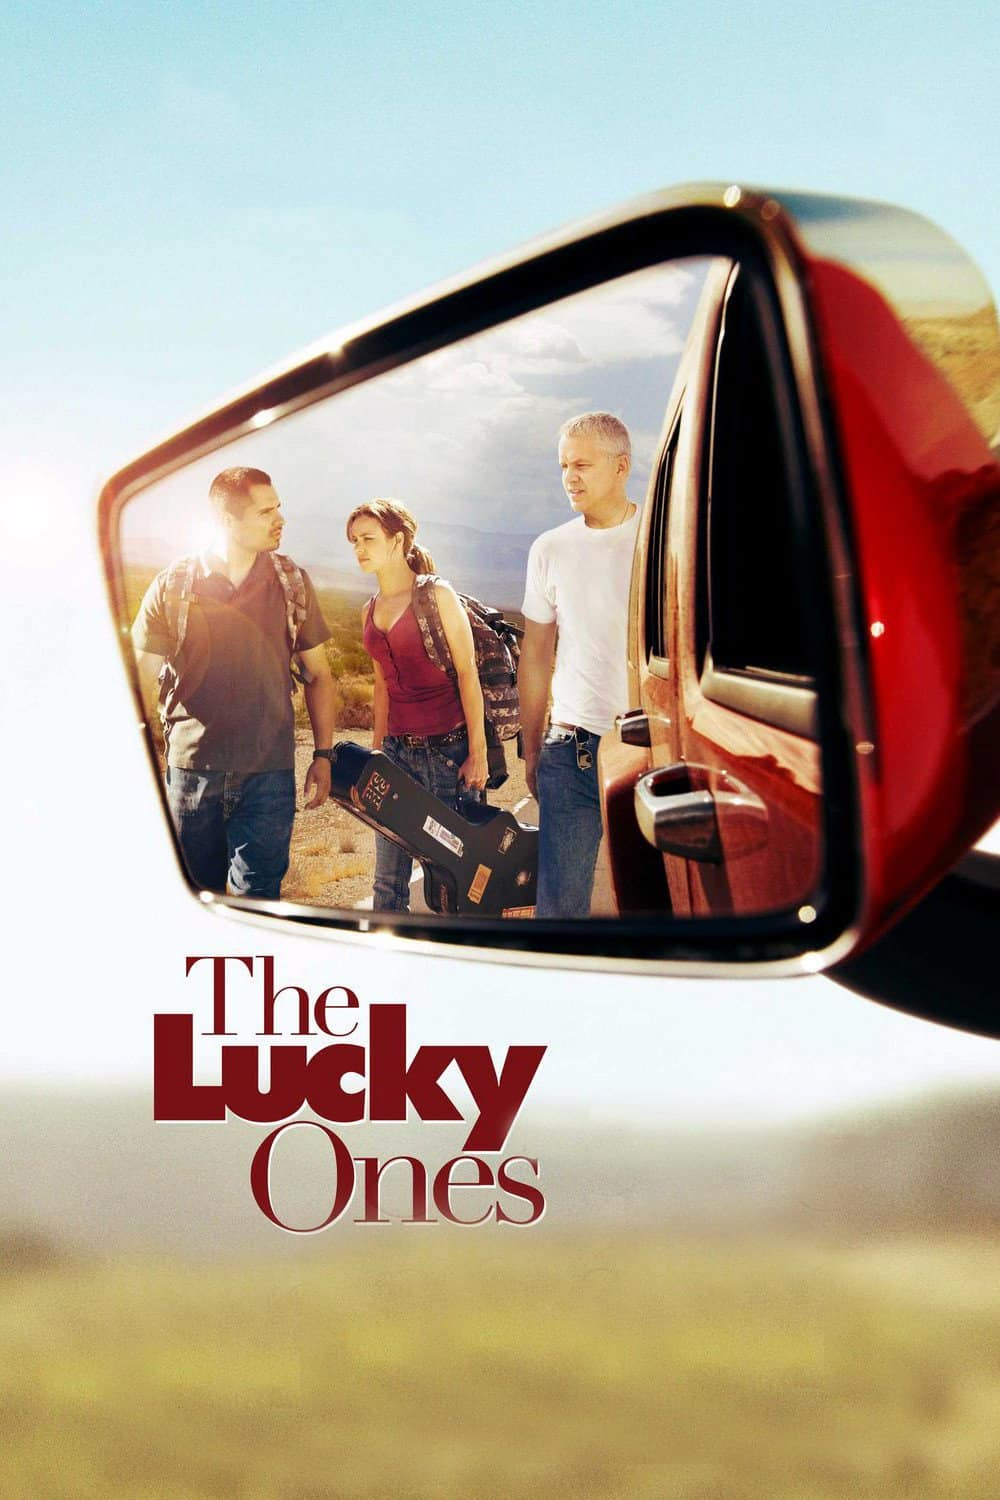 The Lucky Ones, 2008